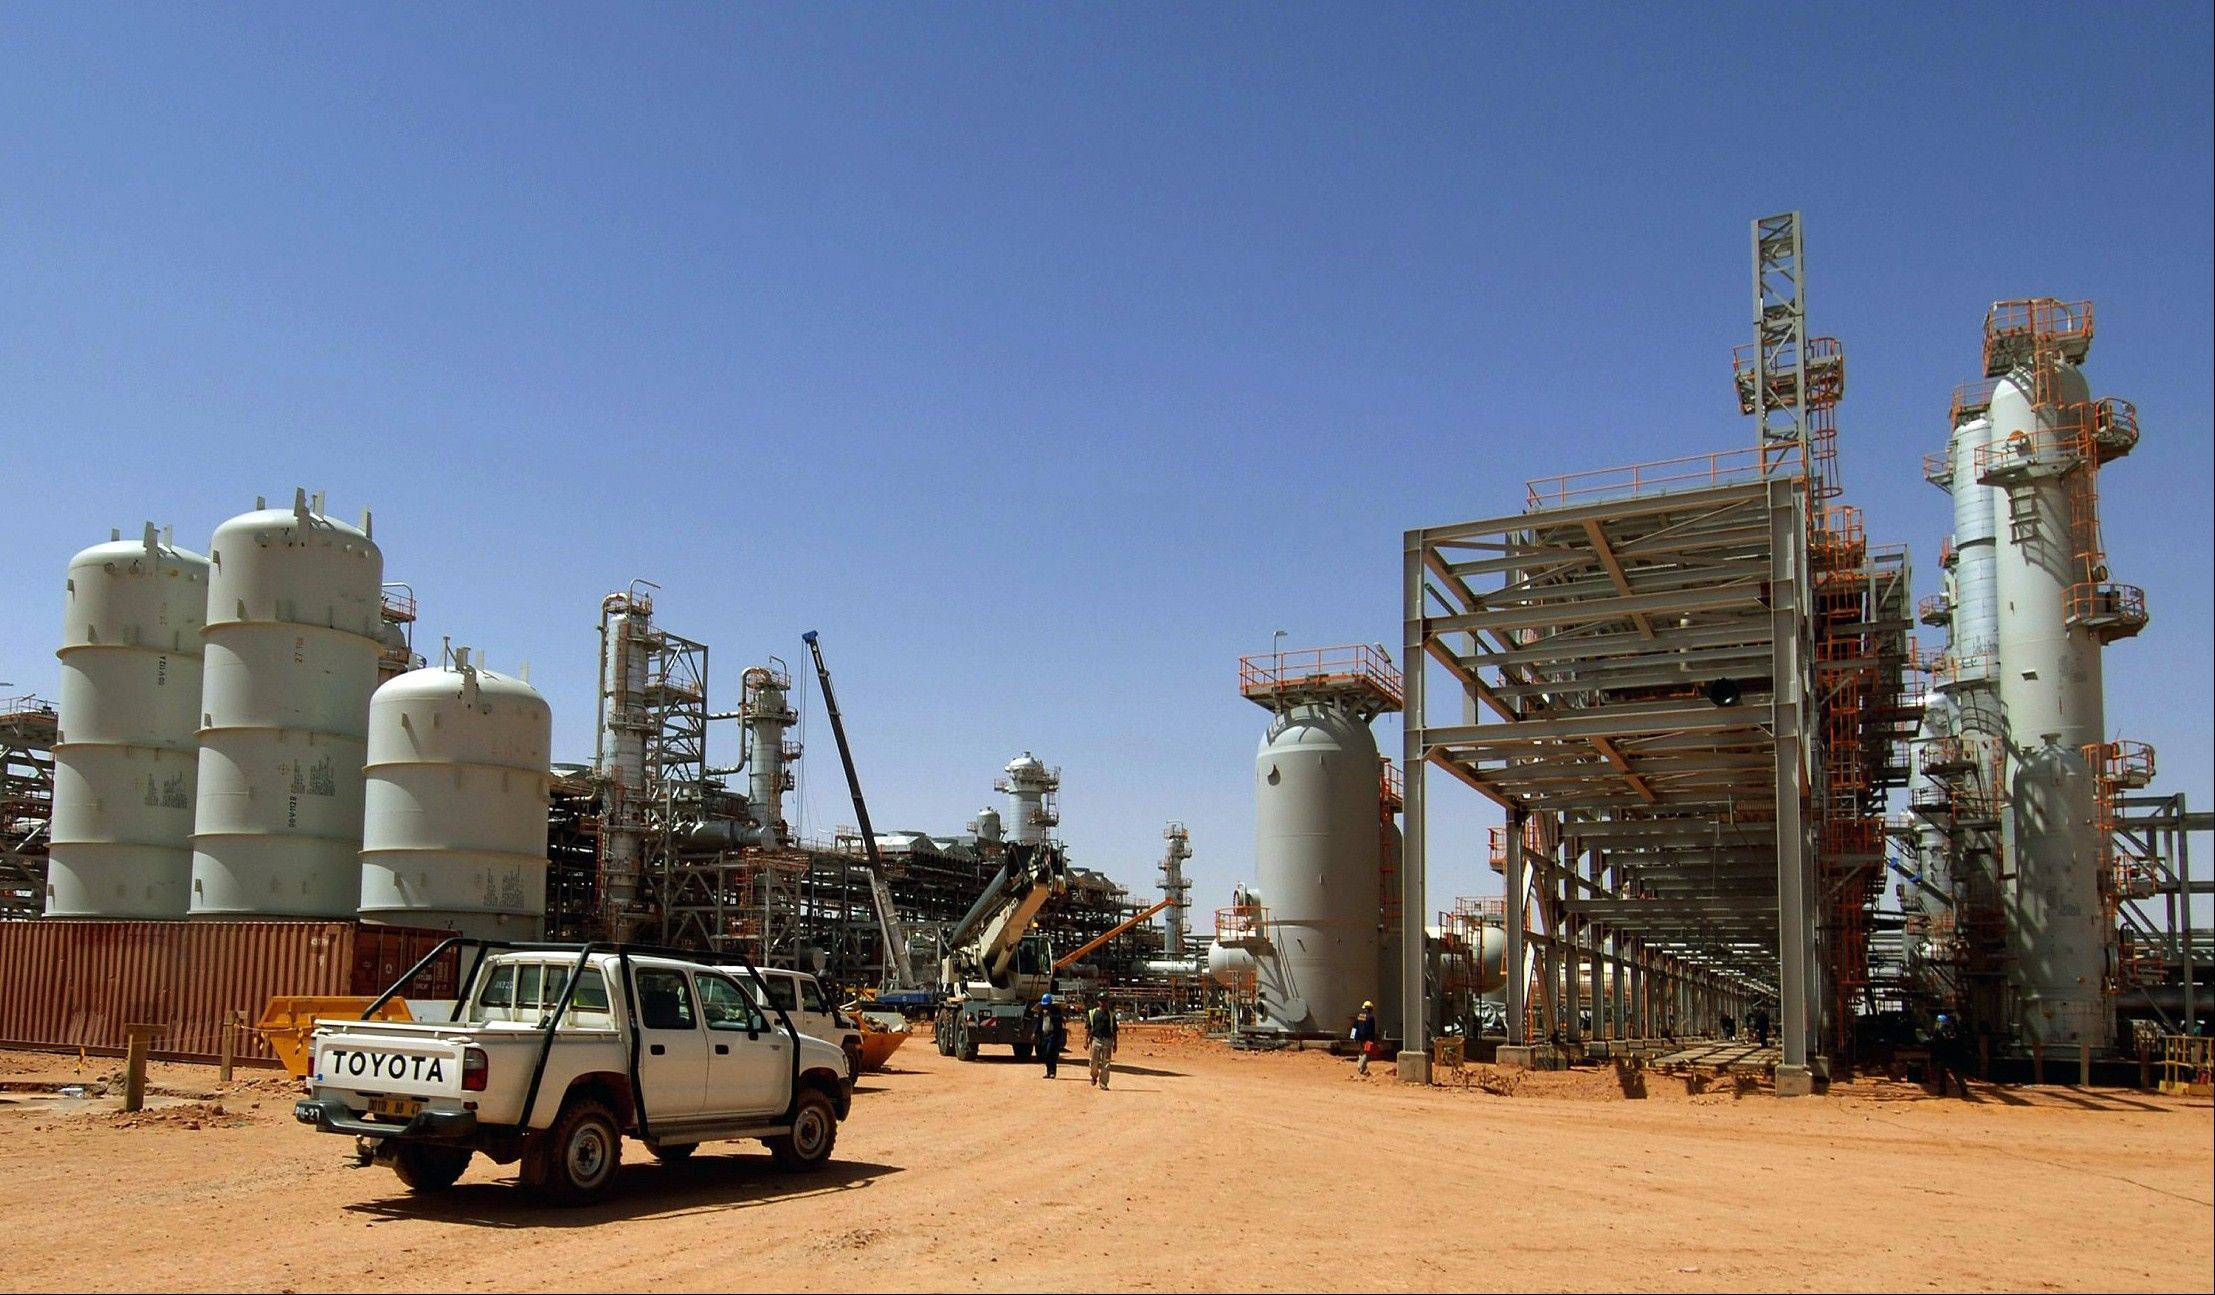 This 2005 file photo shows the Ain Amenas gas field in Algeria, where Islamist militants raided and took hostages Wednesday Jan. 16, 2013. British Prime Minister David Cameron said Algerian forces are �still pursuing terrorists� and looking for hostages at an oil installation in the Sahara desert. Cameron told lawmakers Friday Jan. 18, 2013 that Algerian troops were still engaged in an operation to secure a large and complex site.